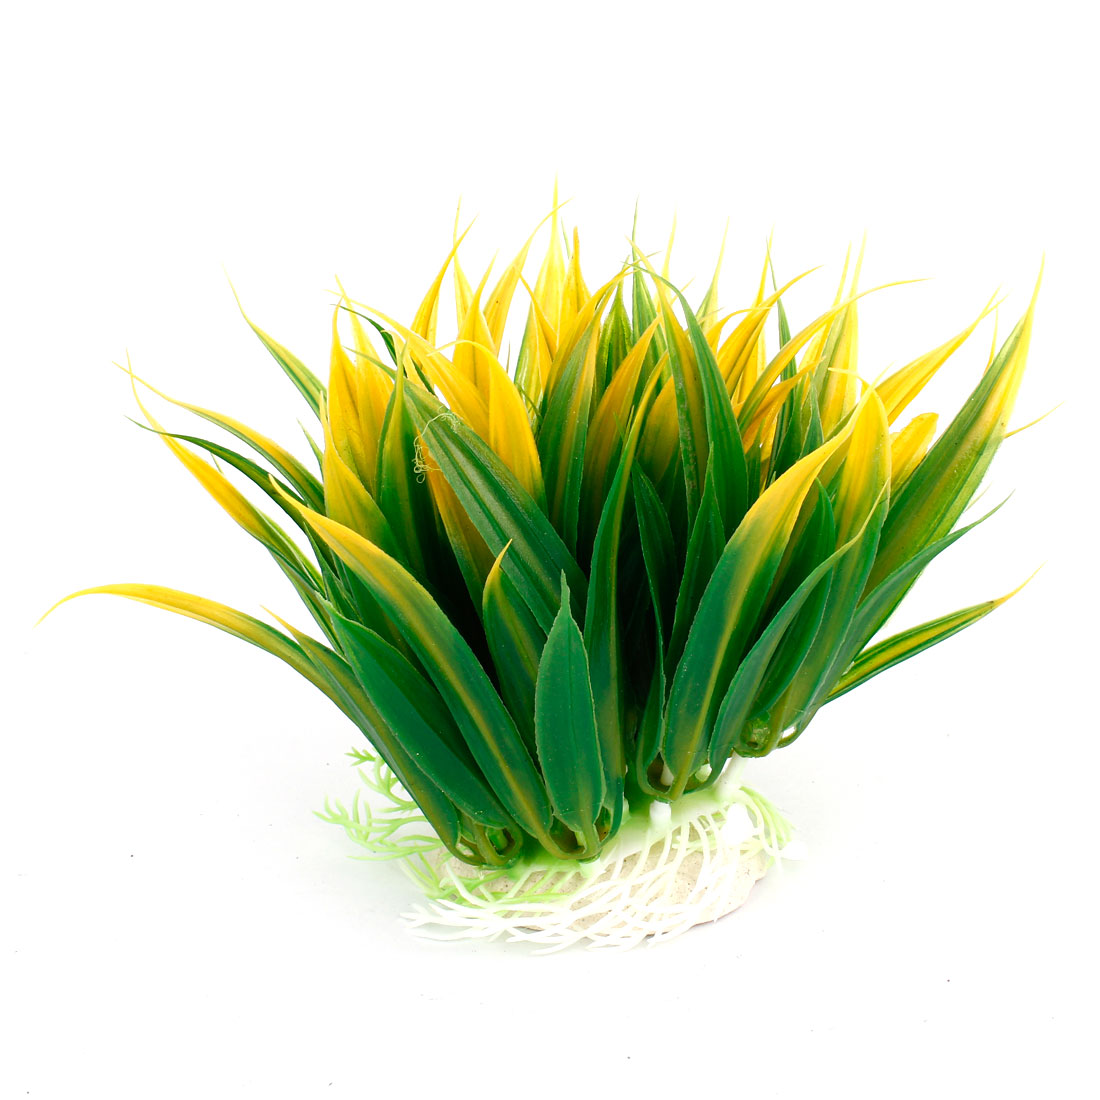 "Aquarium Tank Plastic Grass Plant Decoration Green Yellow 4.7"" Height"